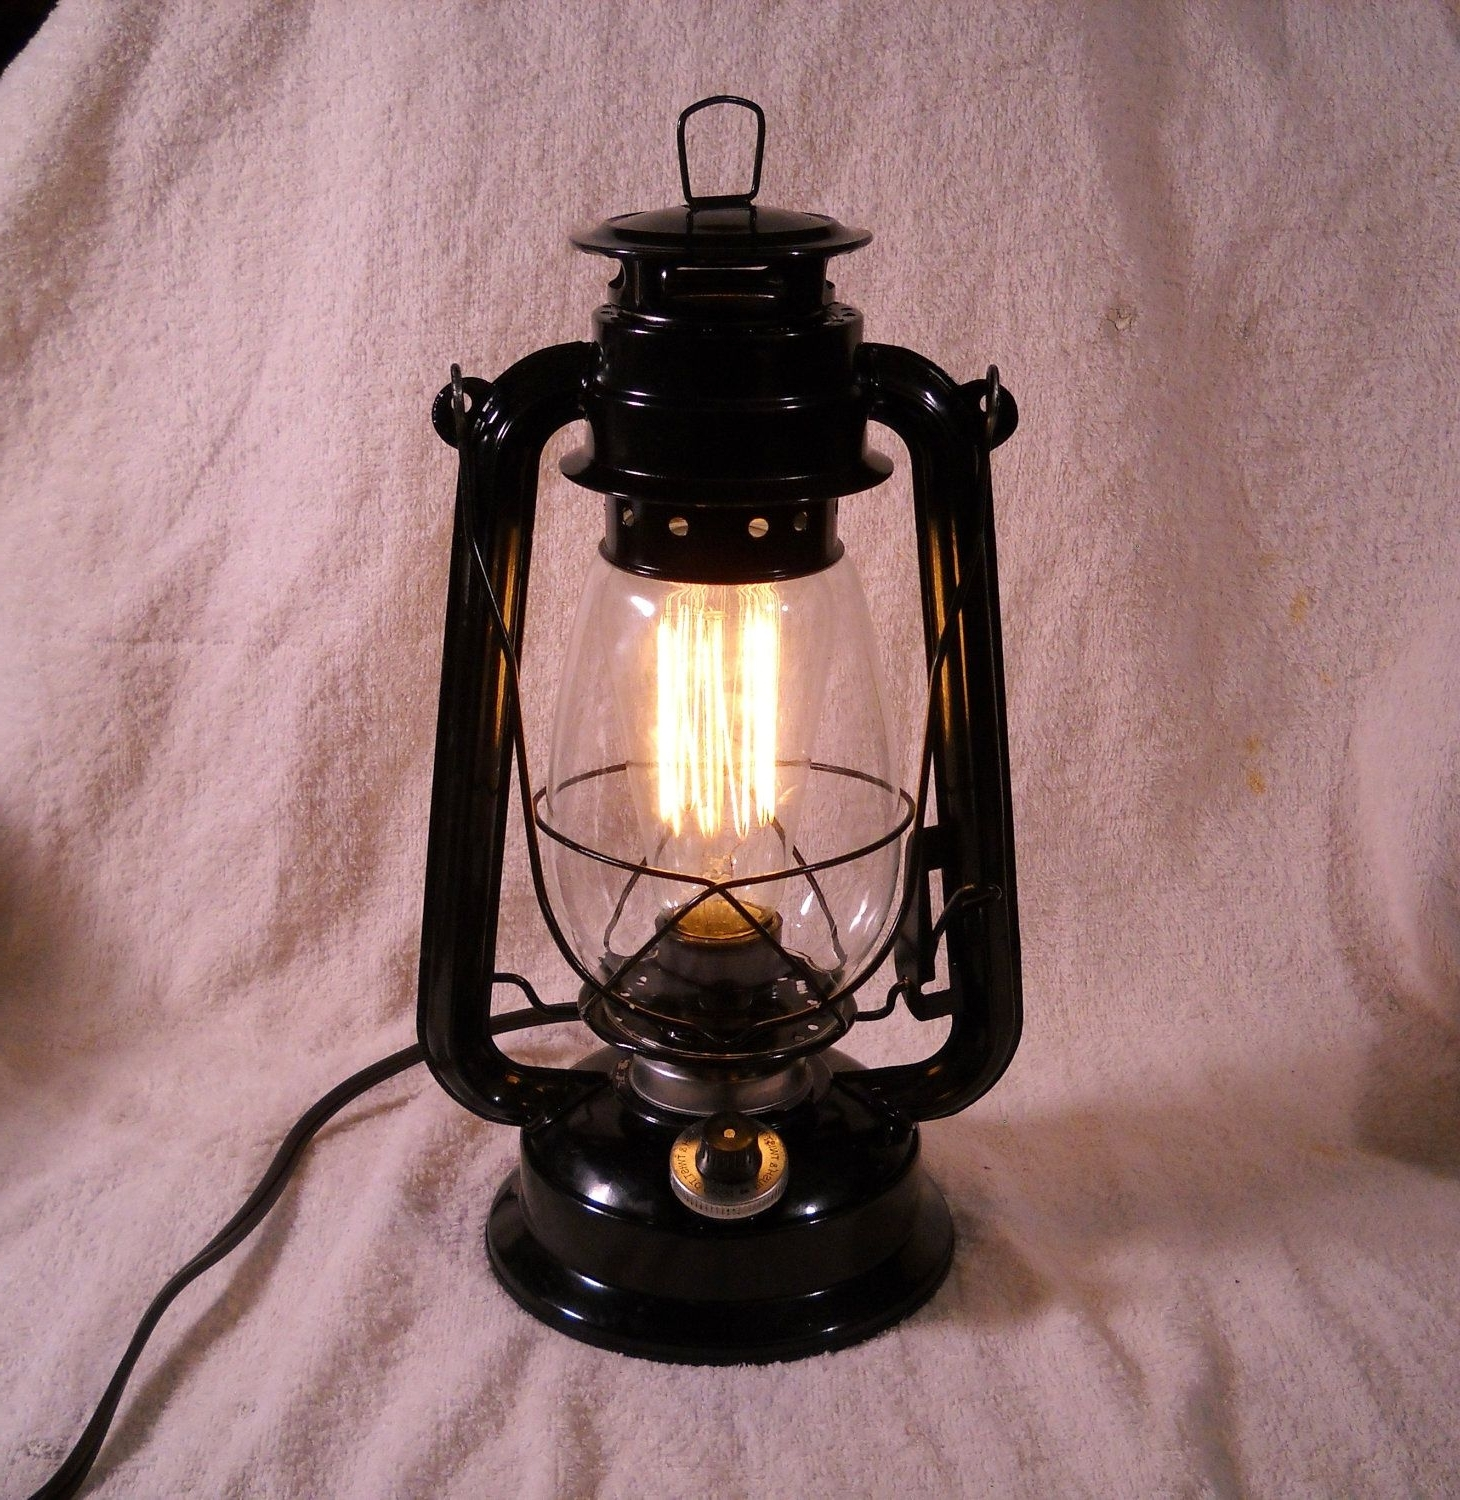 Rustic Outdoor Electric Lanterns In Favorite Black Electric Lantern Industrial Table Lamp Hanging Lighting With (View 12 of 20)